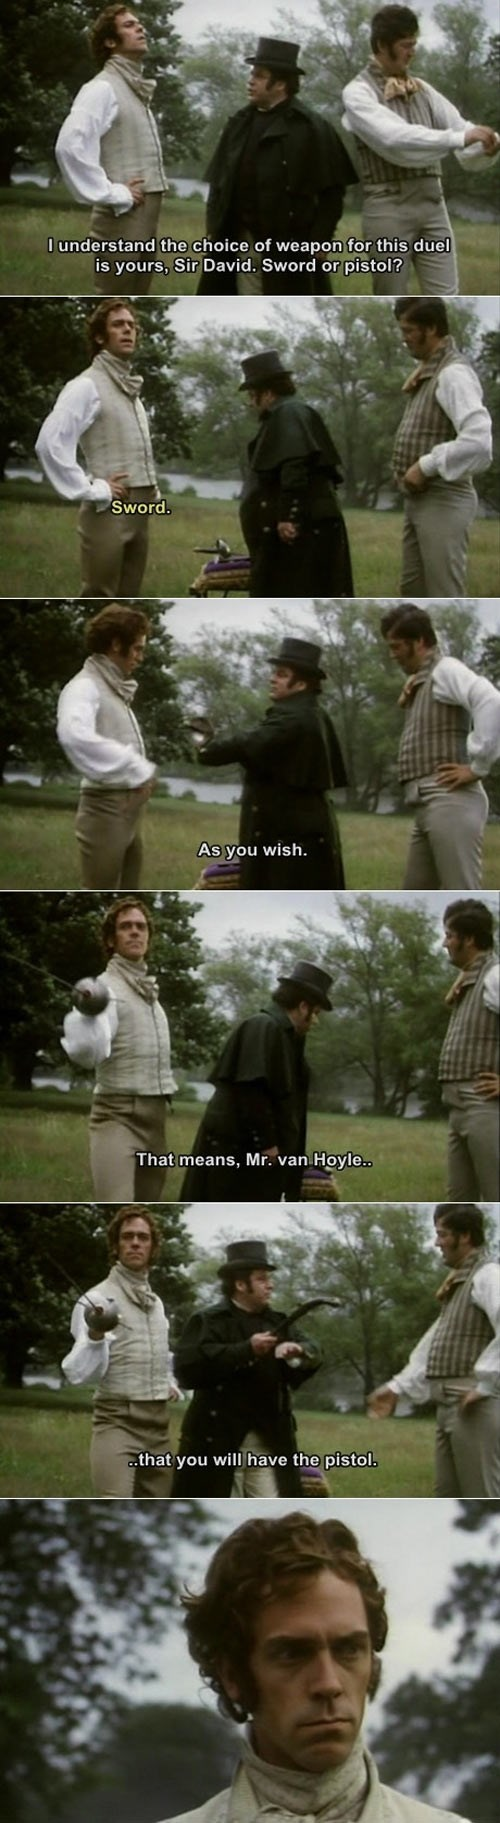 duel,hugh laurie,Stephen Fry,a bit of fry and laurie,pistols at dawn